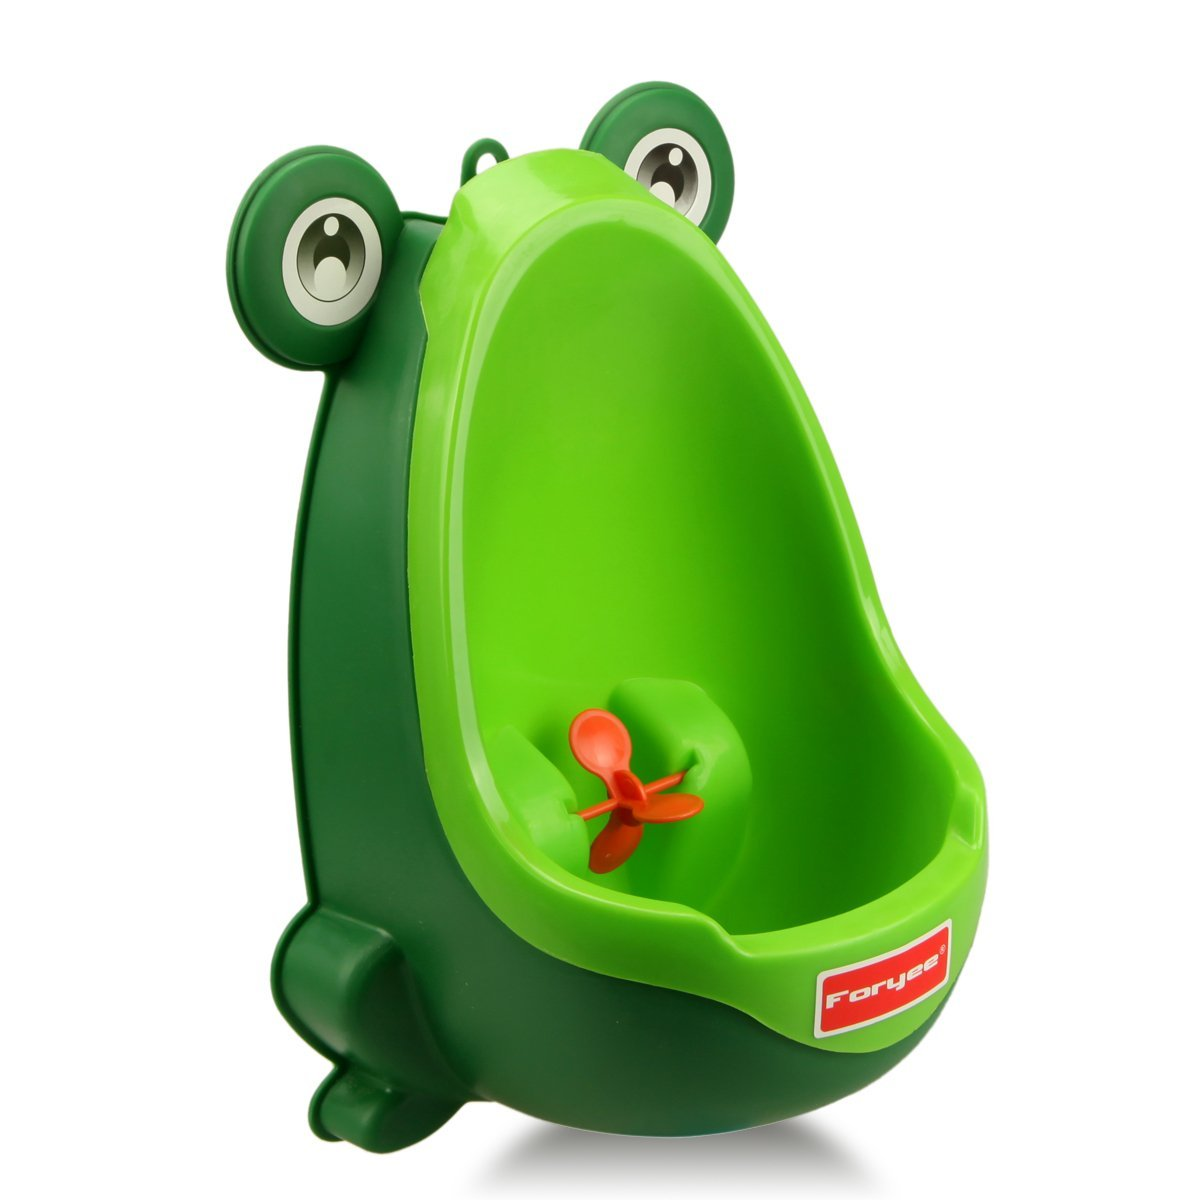 Foryee Cute Frog Potty Training Urinal for Boys with Funny Aiming Target - Coffee TB0099C